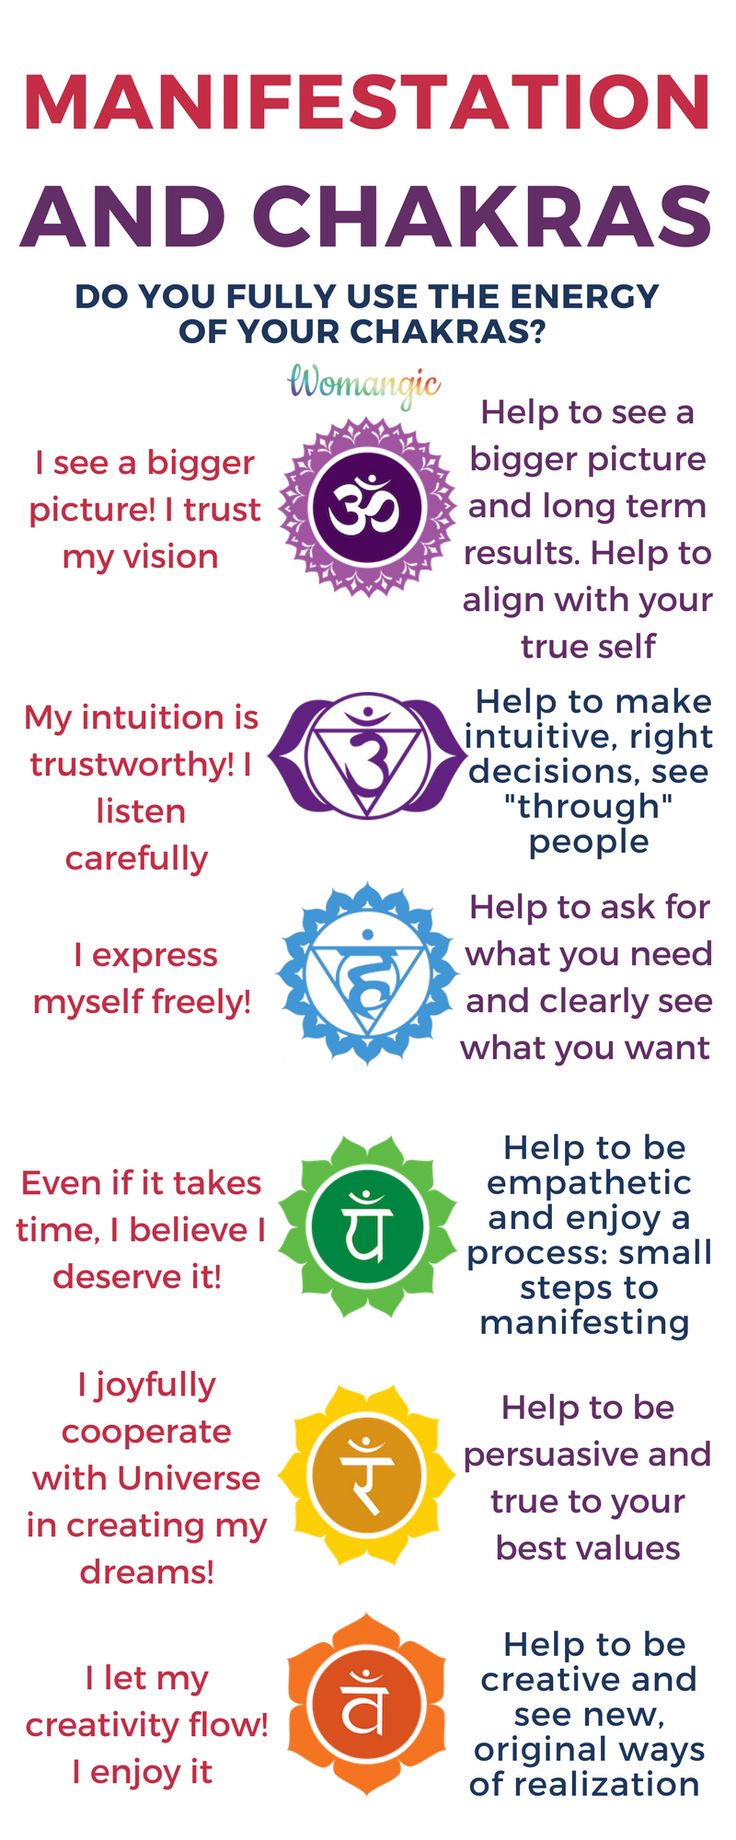 Manifestation, Affirmations, Law of Attraction, Miracle, Magic, Manifestation Ideas, Manifestation Tips, Manifestation Meditation, Power of Manifestation, Manifestation Exercises, Universe, Spirituality, Growth  Chakra, chakra balancing, Root, Sacral, Sol